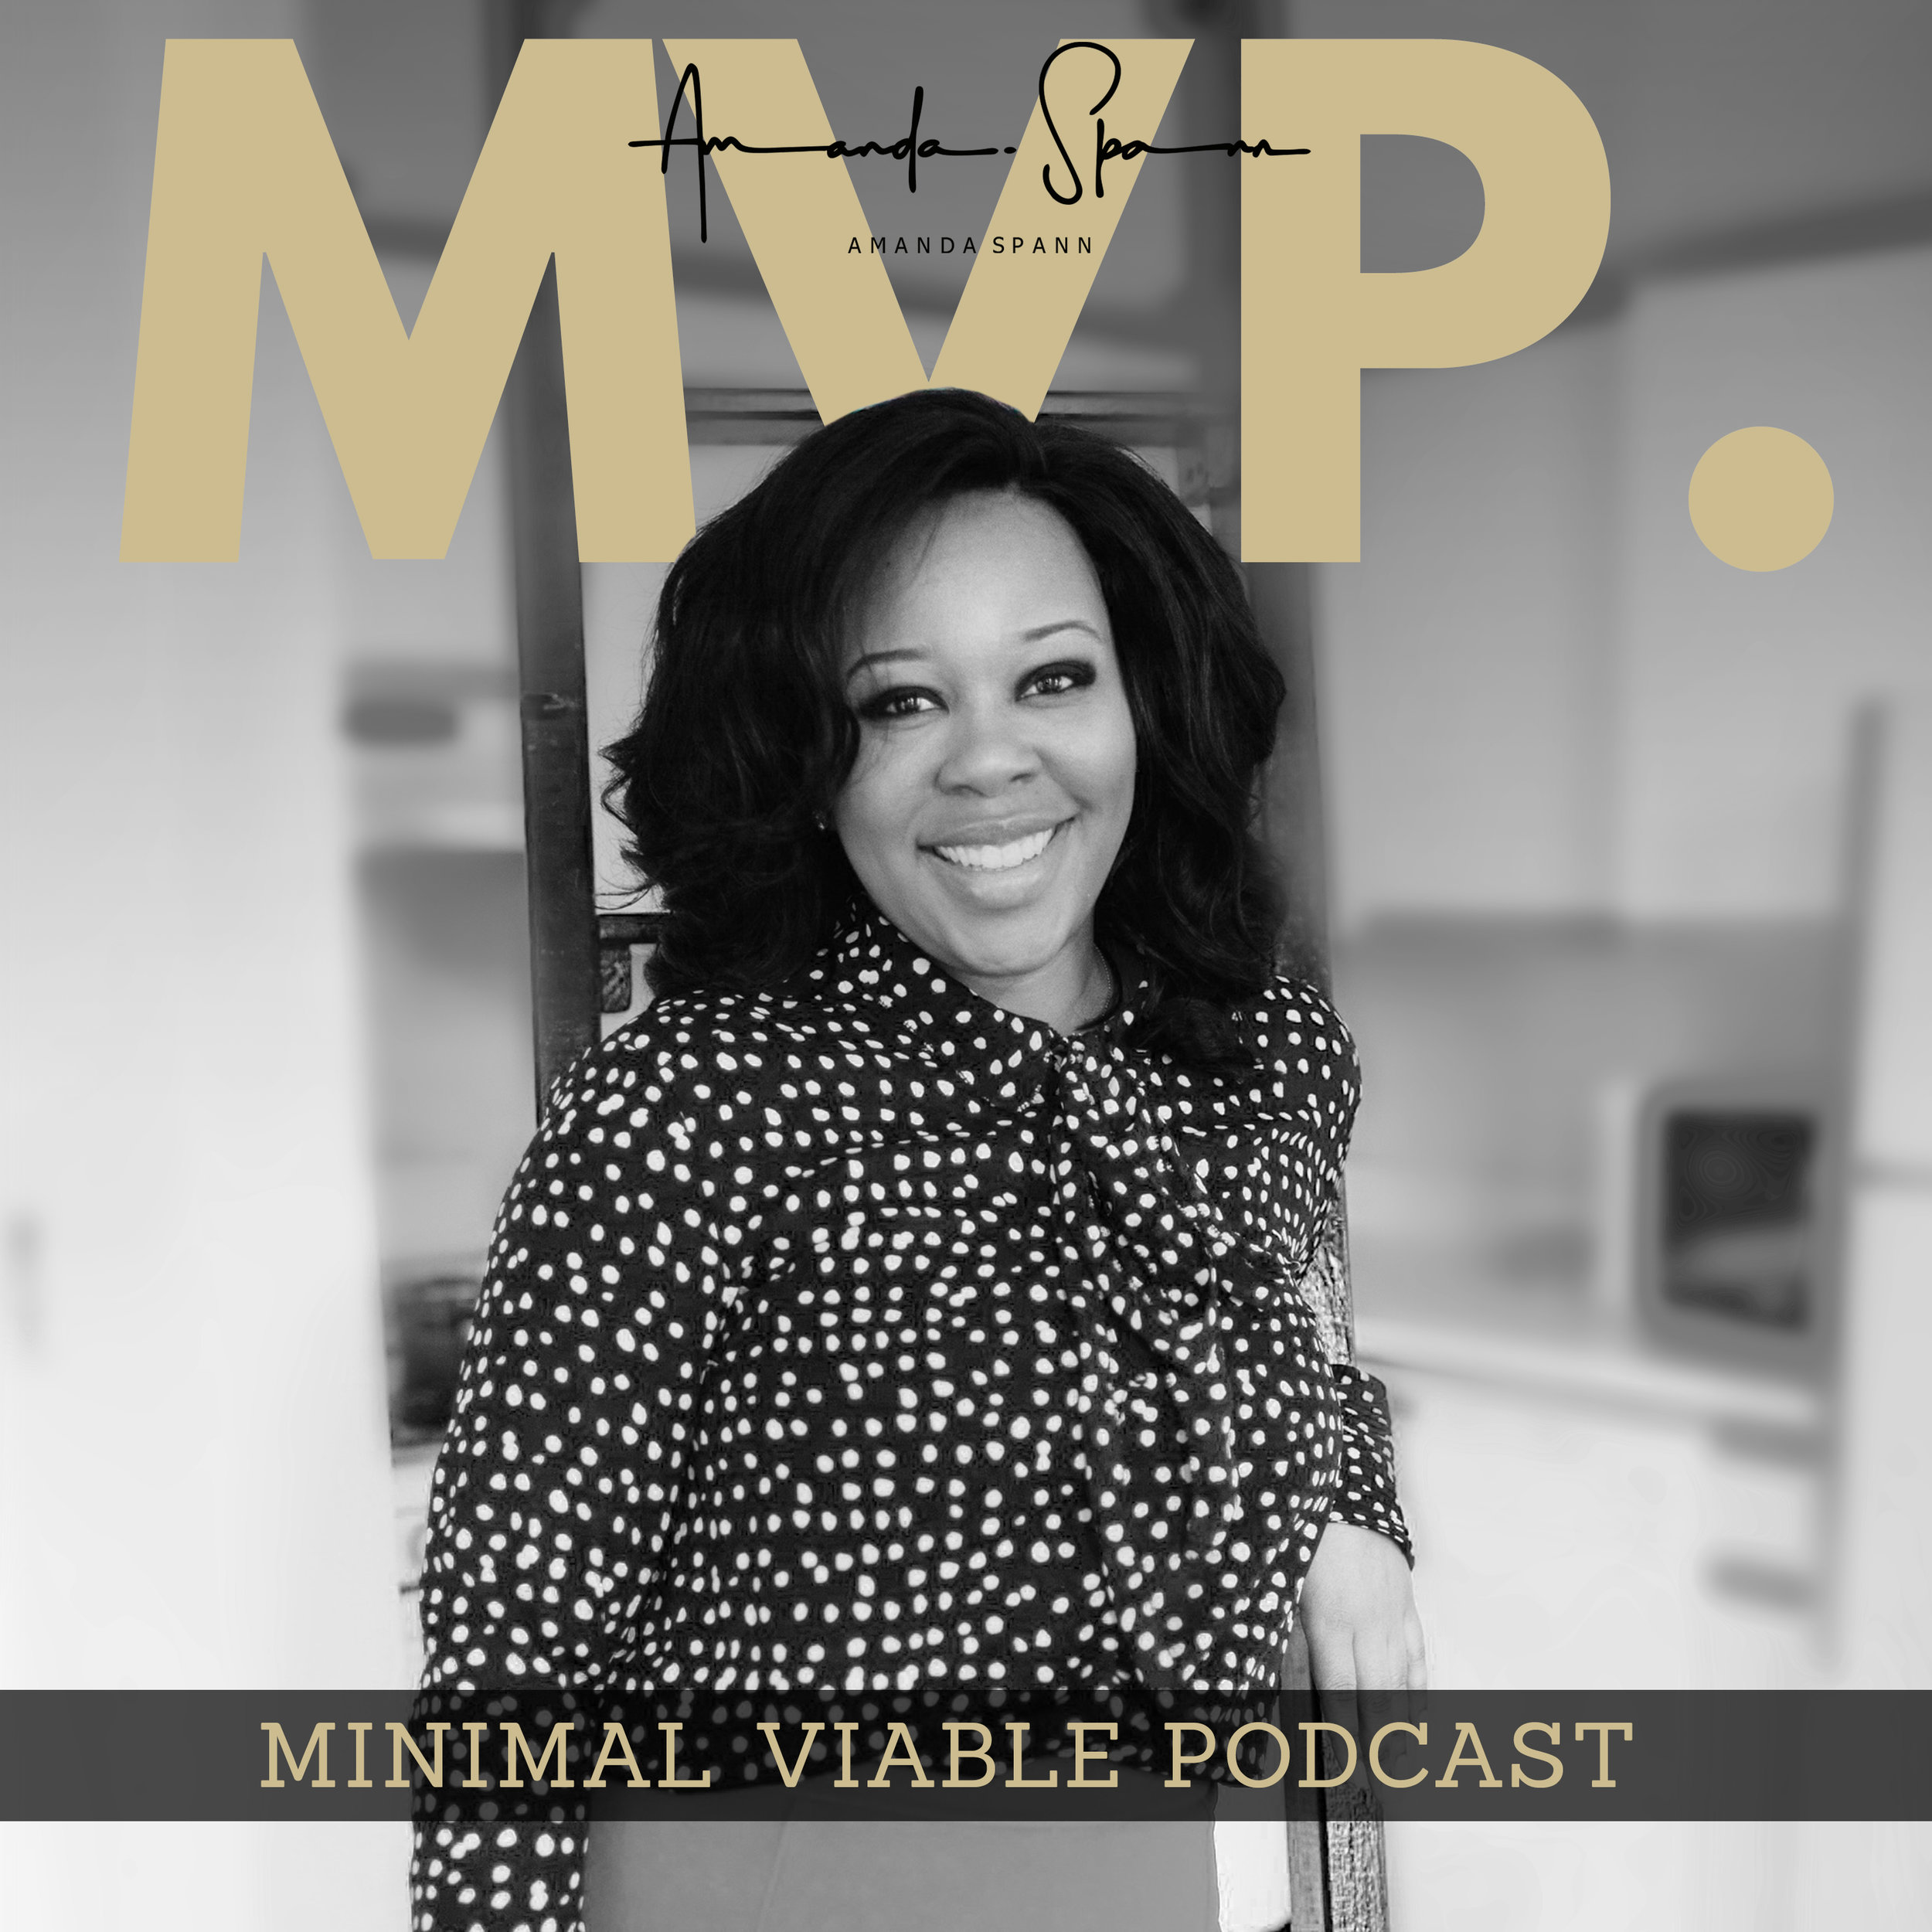 Minimal Viable Podcast - Get the playbook to tech and entrepreneurship from Industry all-stars.Listen to the Podcast